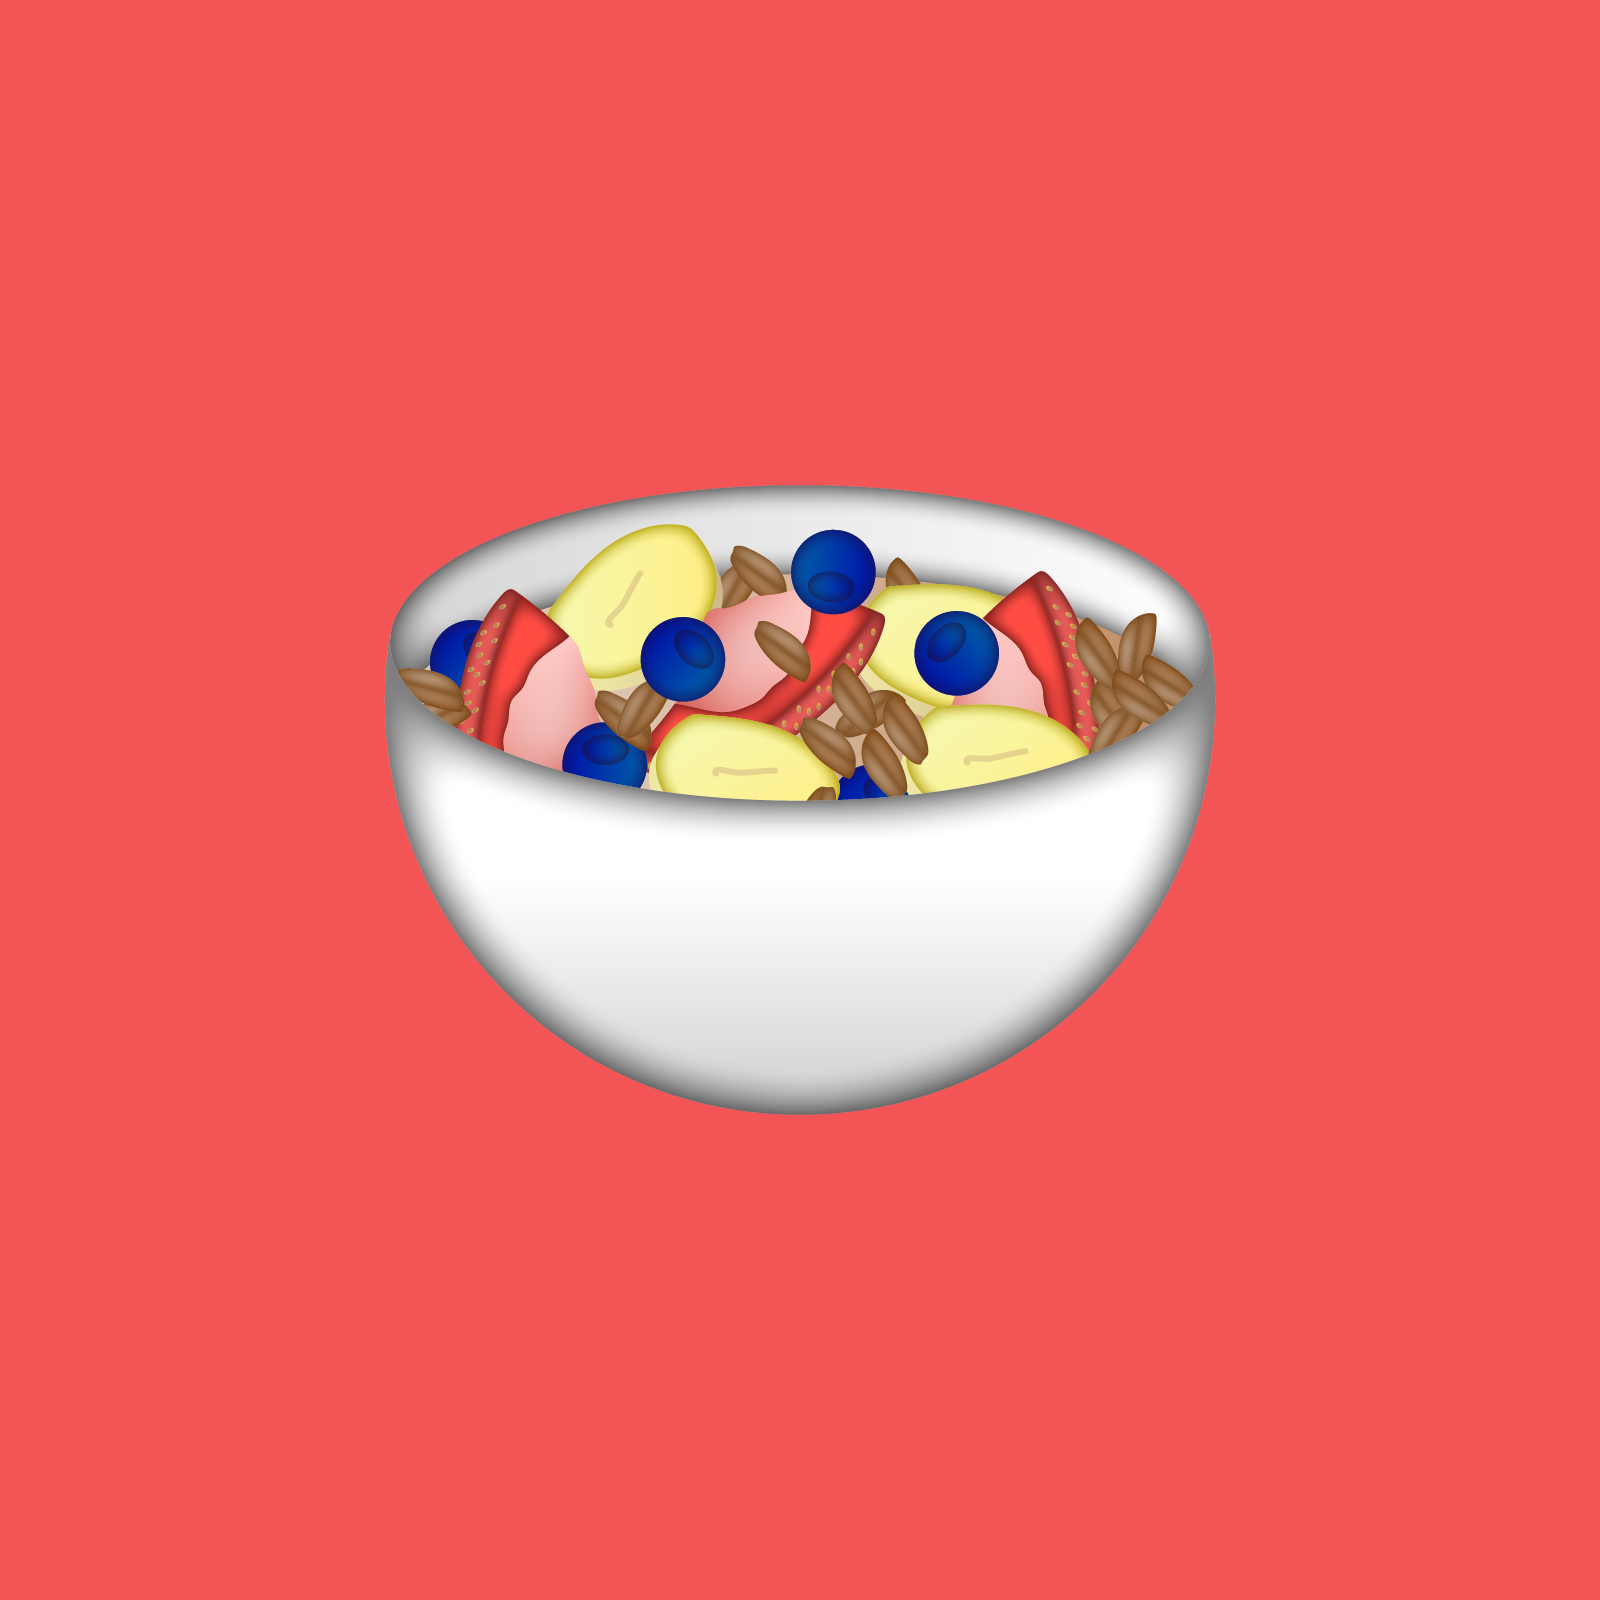 Cereal clipart emoji. Best food ideas